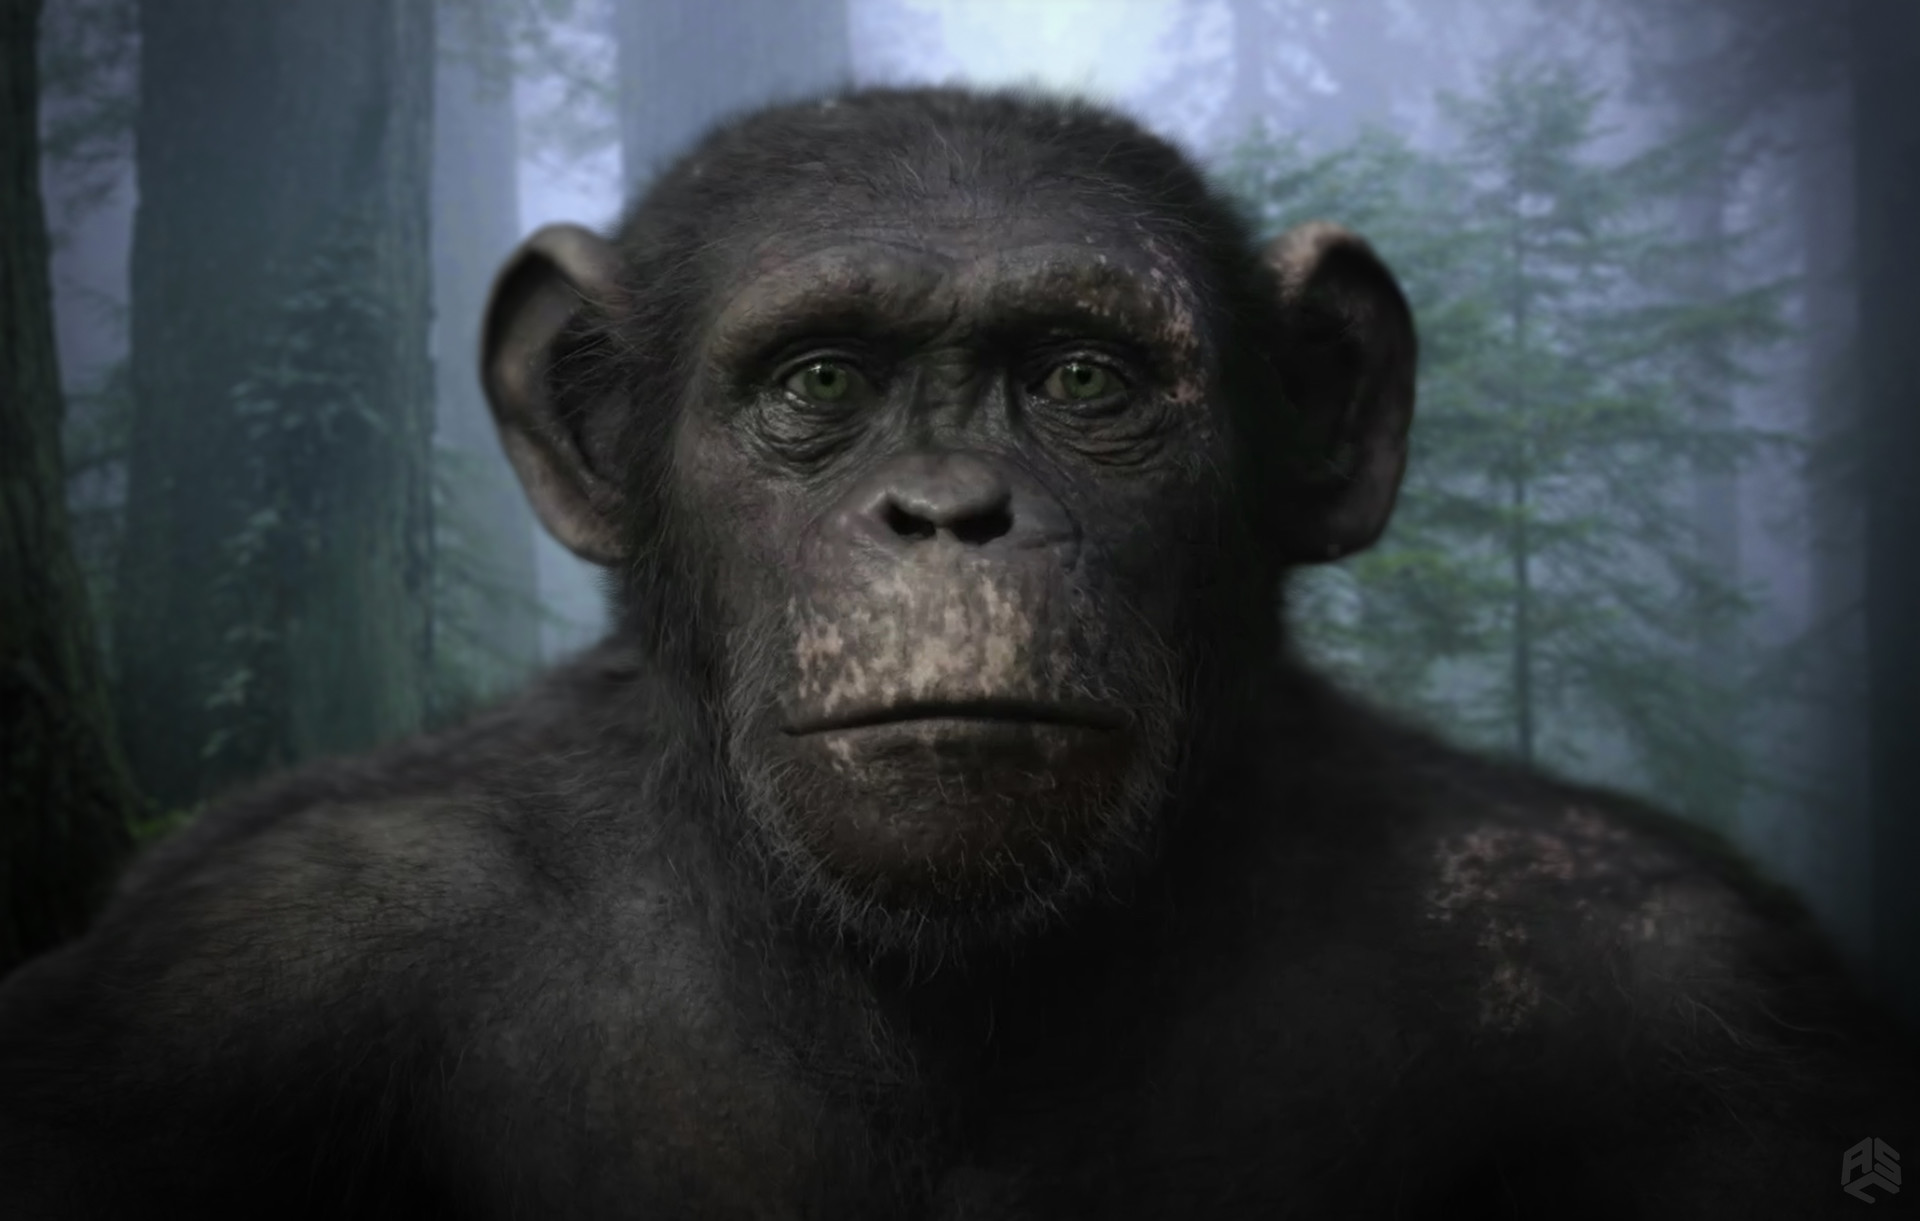 aaron sims creative war for the planet of the apes concept art